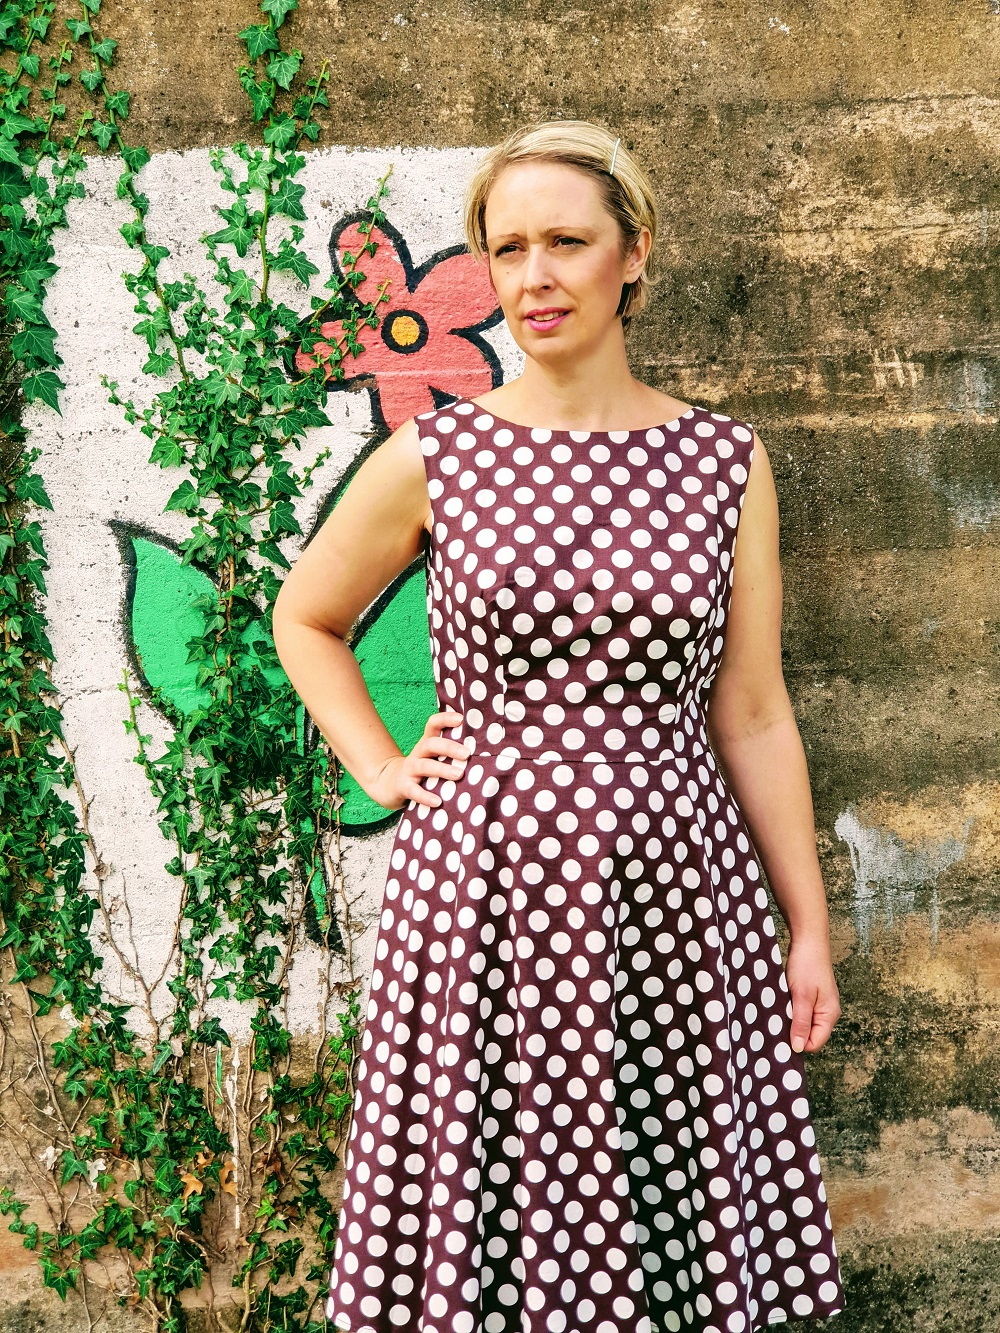 Brown Polka Dot Dress: Pretty Woman Style!?